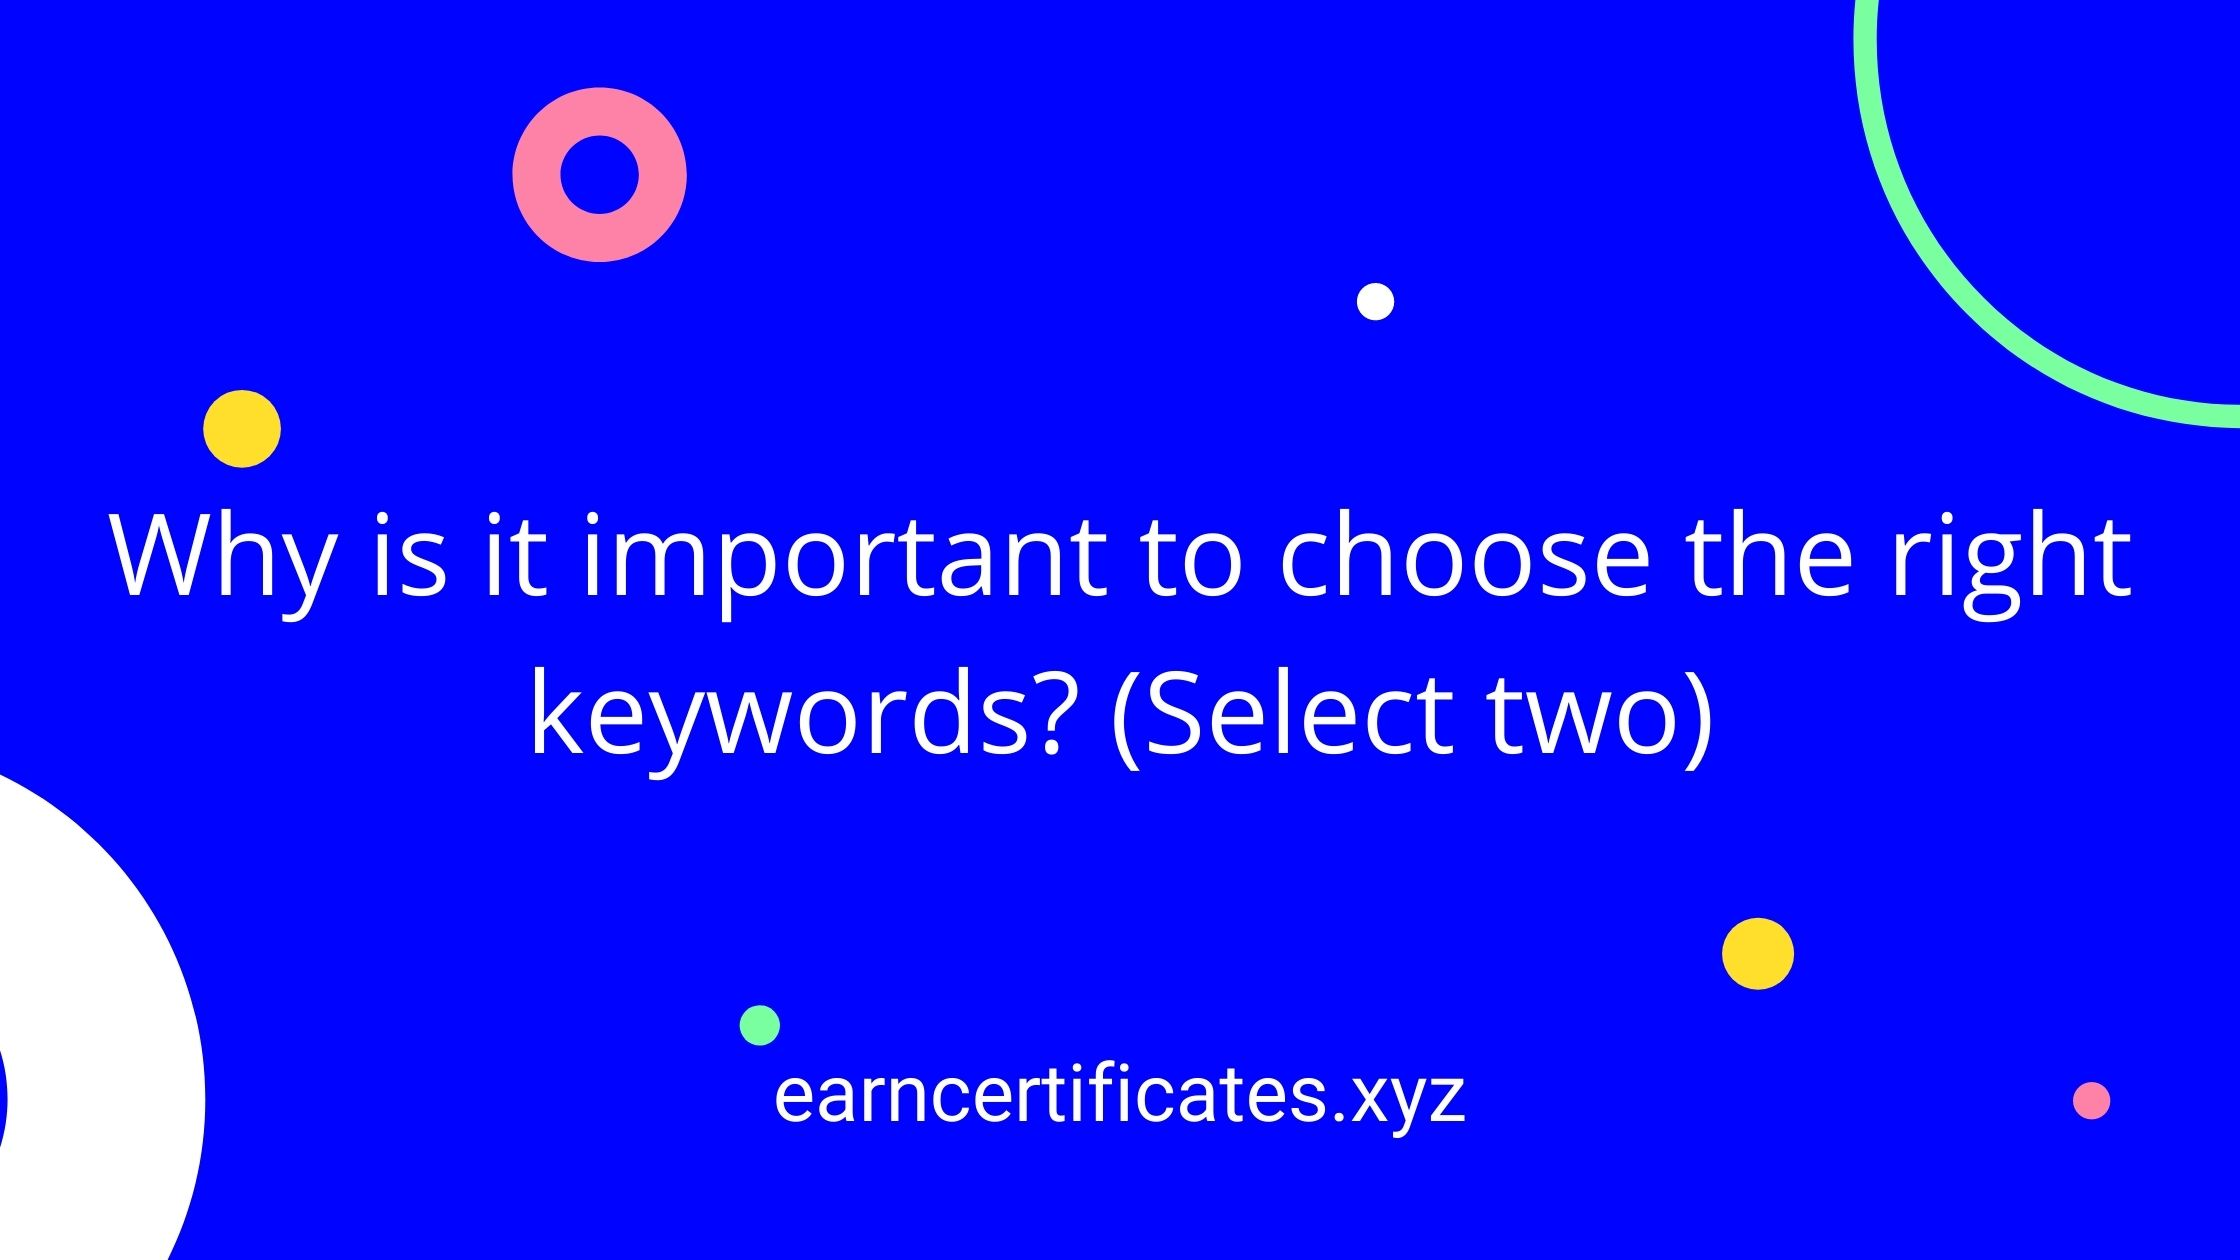 Why is it important to choose the right keywords? (Select two)